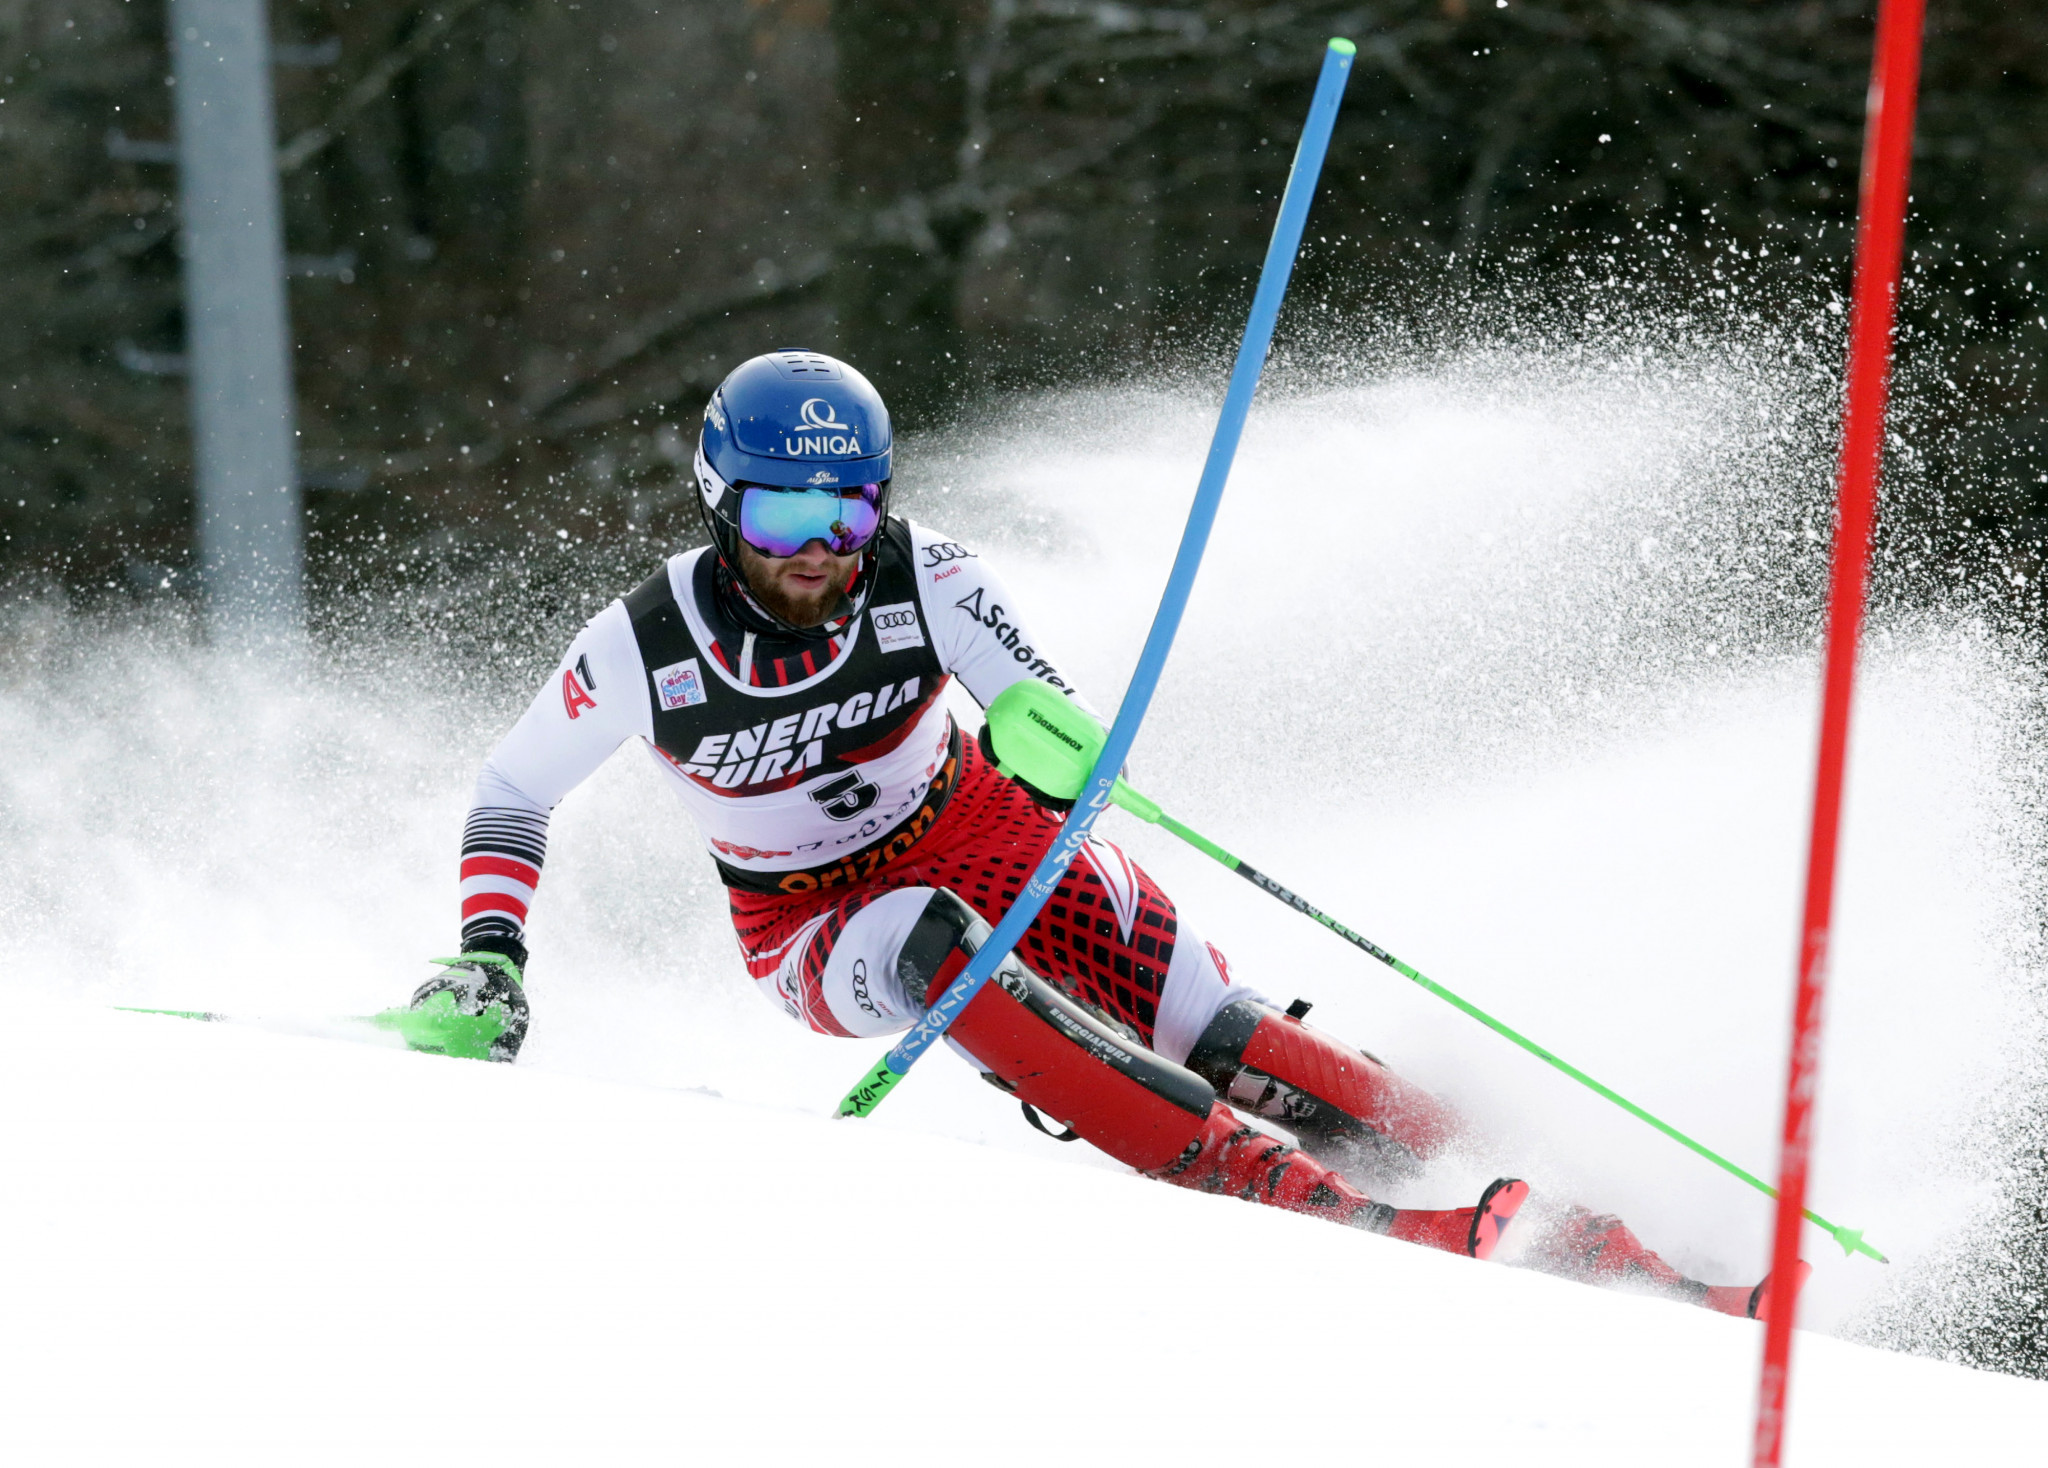 Marco Schwarz led after the first run but then failed to complete his second ©Getty Images